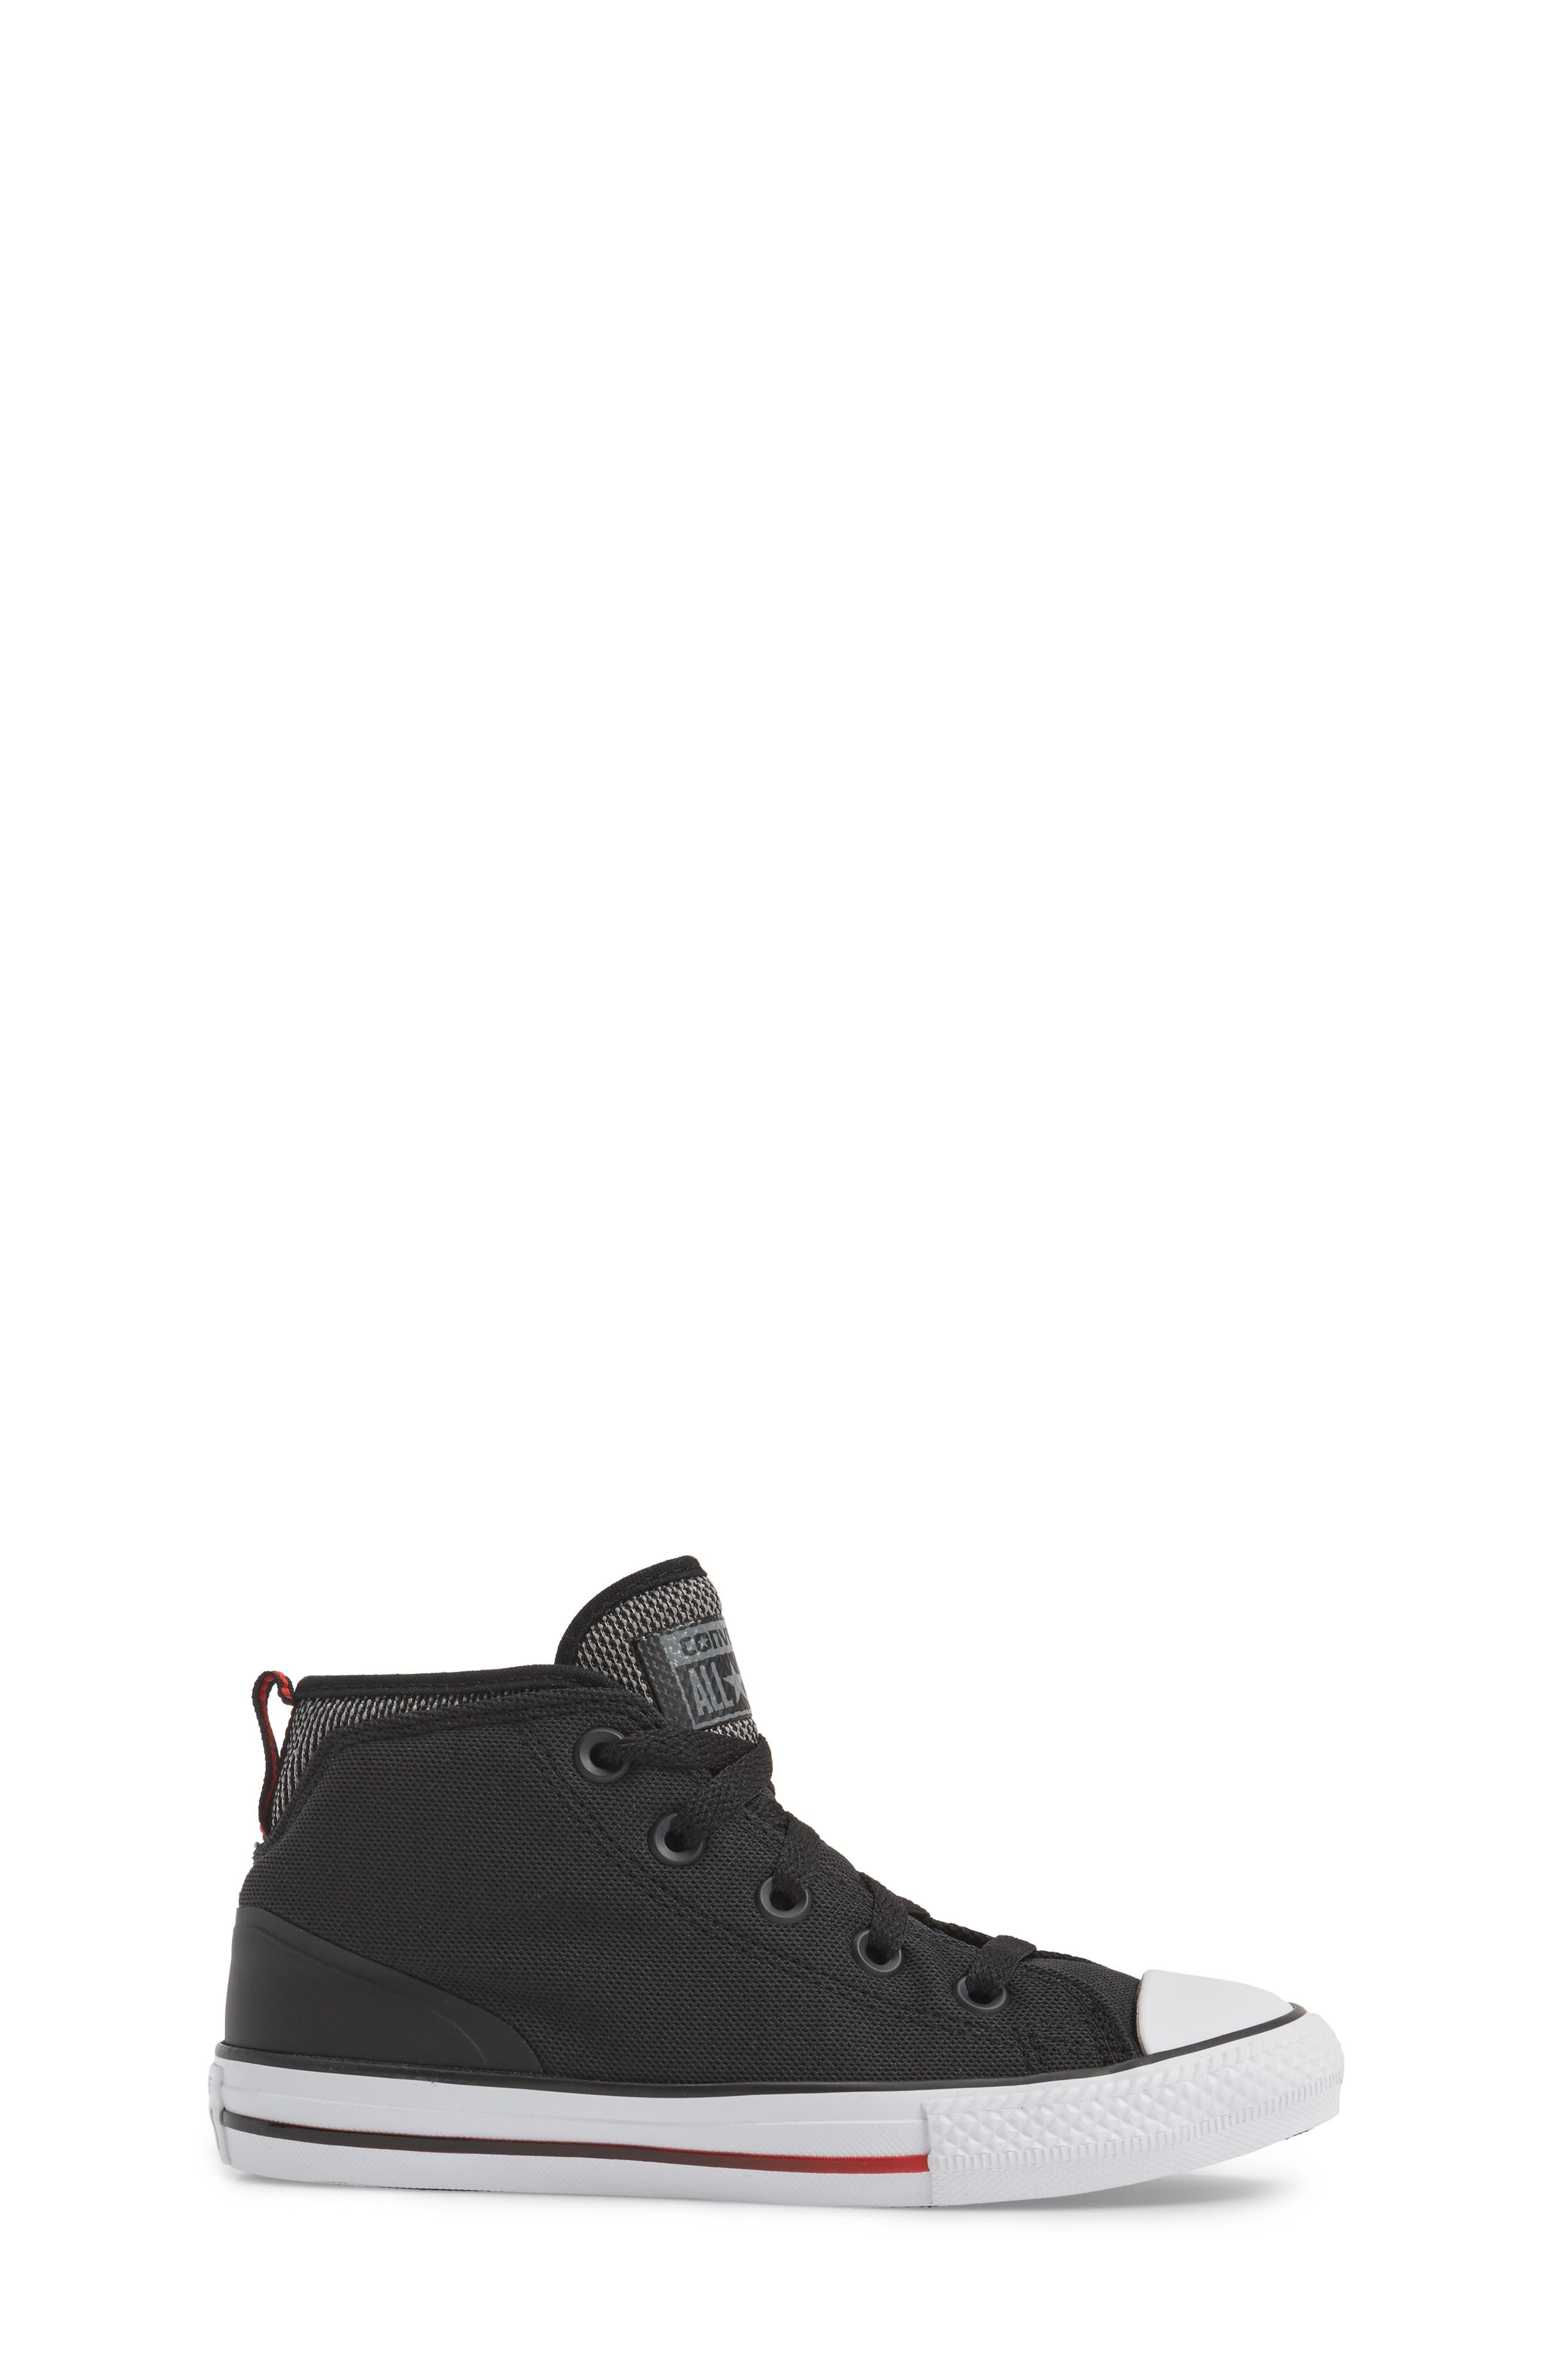 Chuck Taylor<sup>®</sup> All Star<sup>®</sup> Syde Street High Top Sneaker,                             Alternate thumbnail 6, color,